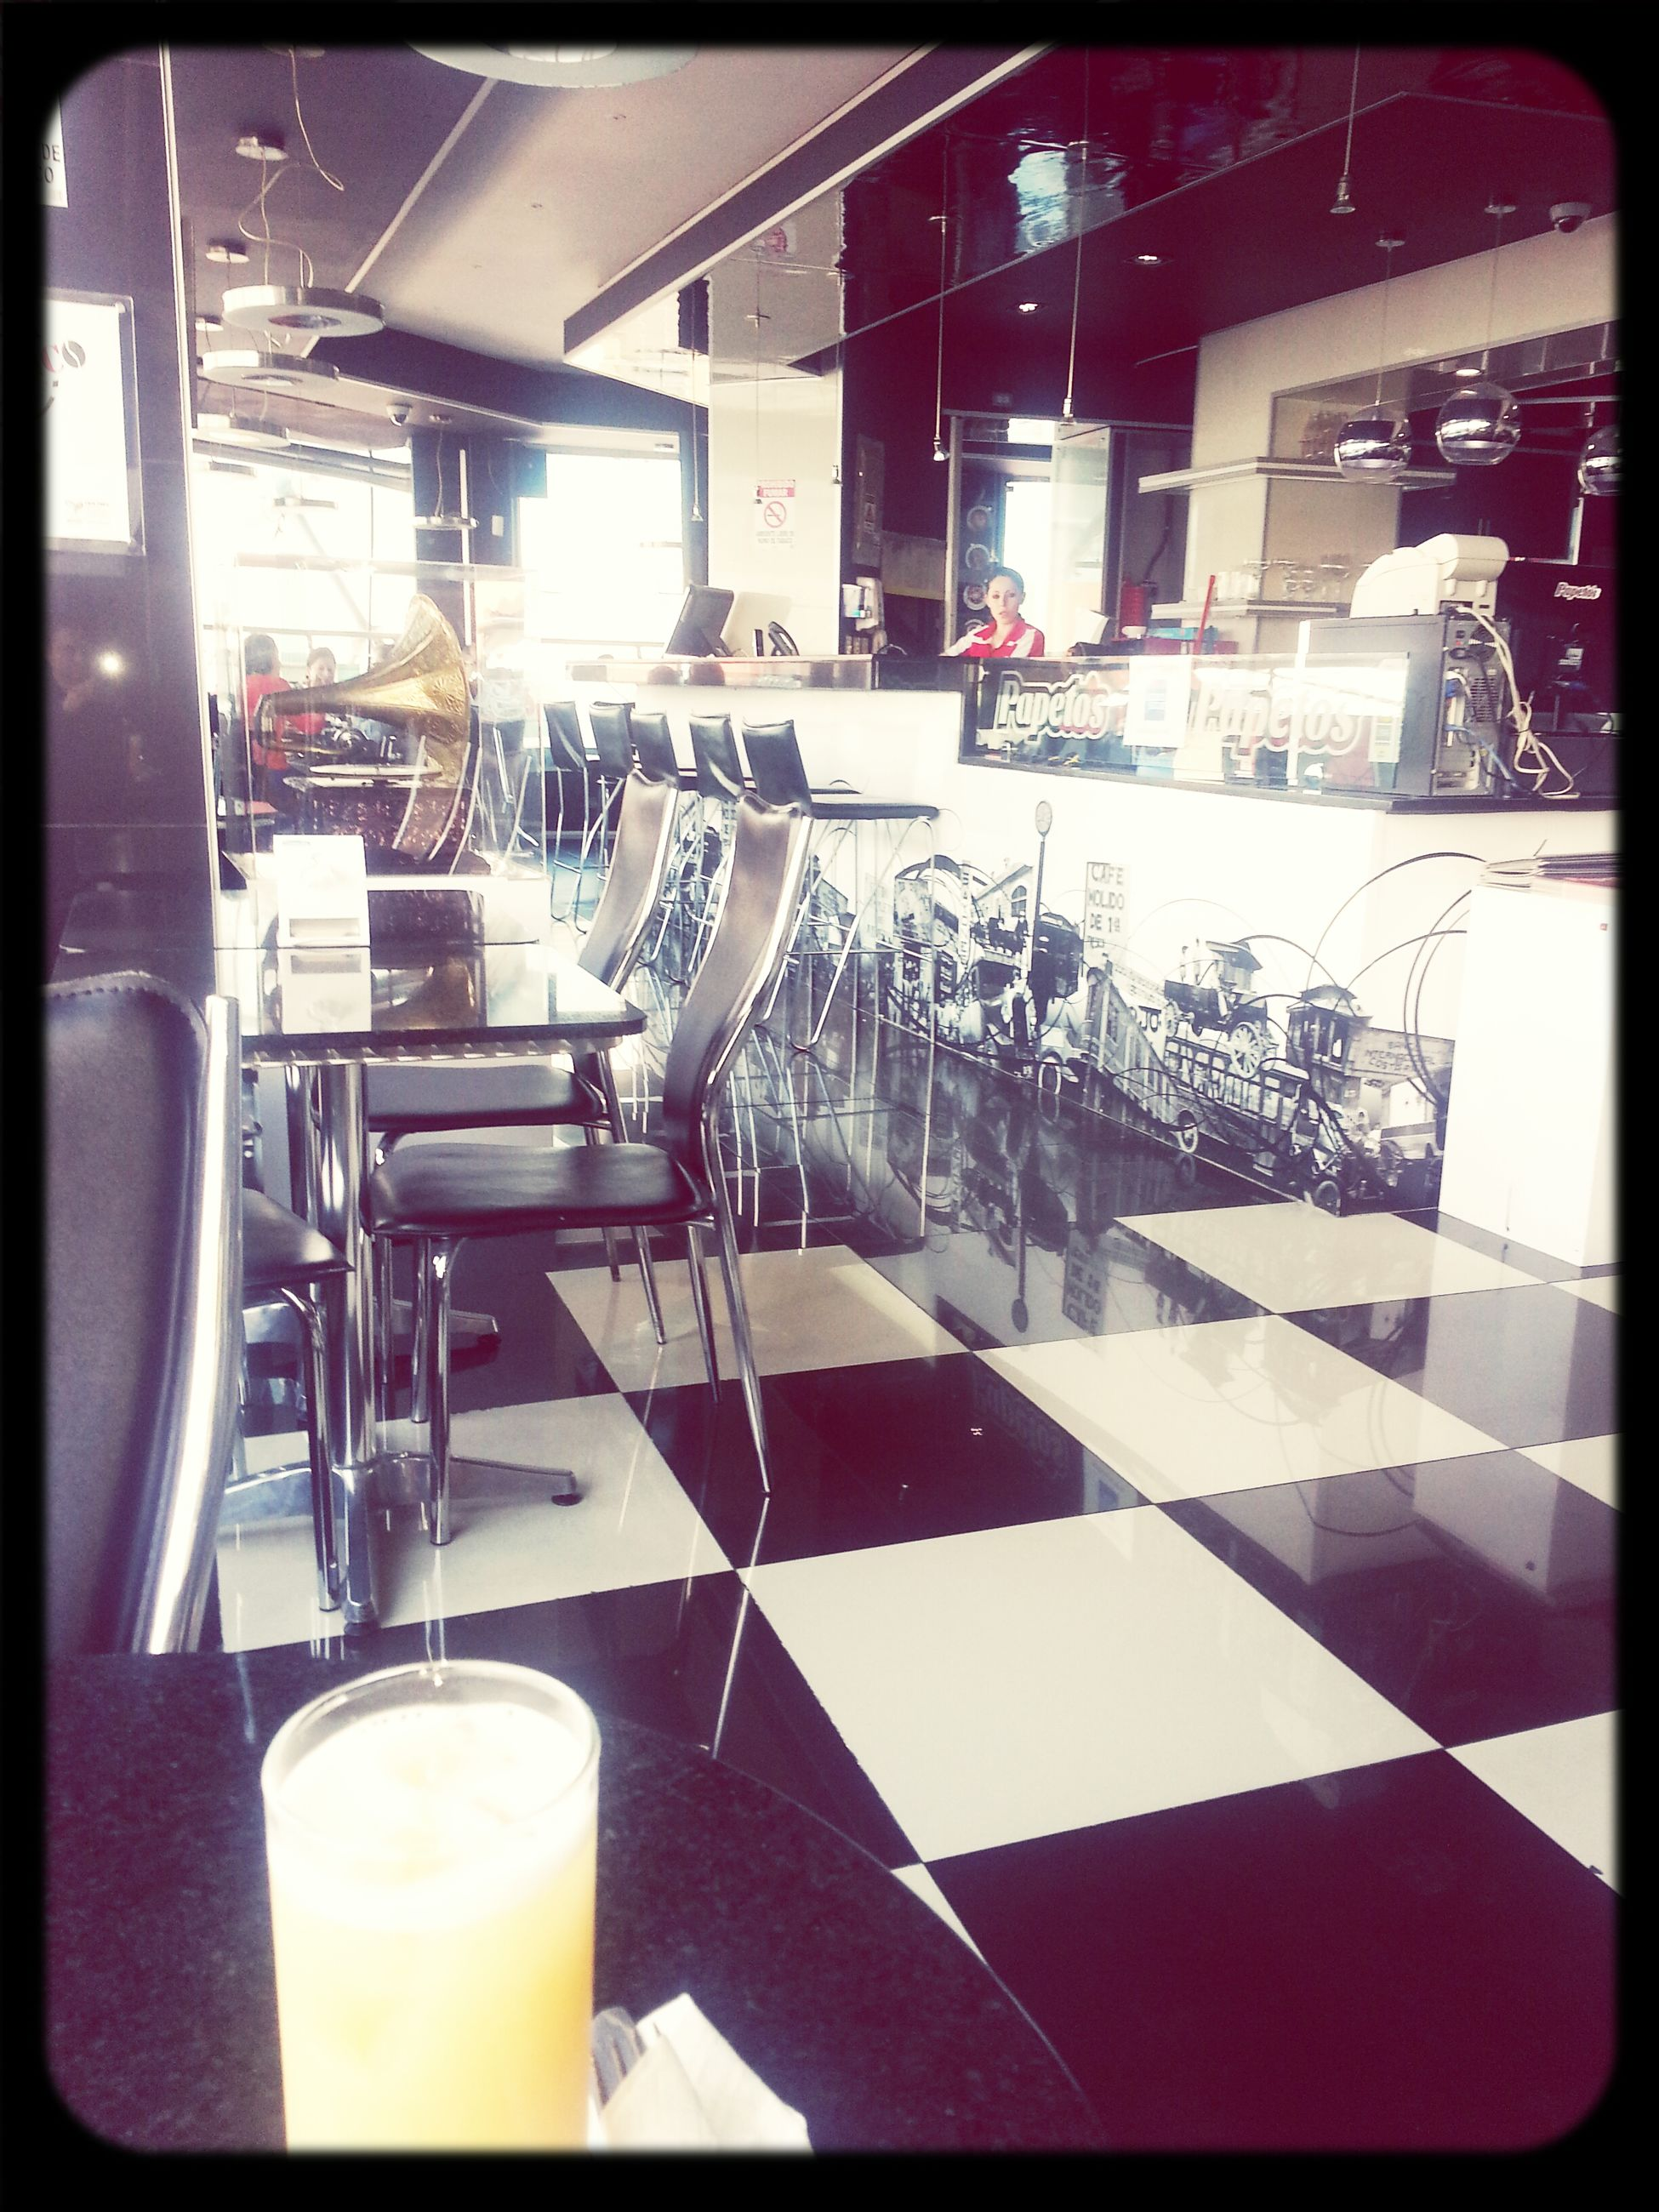 transfer print, auto post production filter, chair, table, indoors, restaurant, architecture, built structure, sunlight, sidewalk cafe, building exterior, day, drink, absence, sitting, glass - material, empty, incidental people, seat, shadow